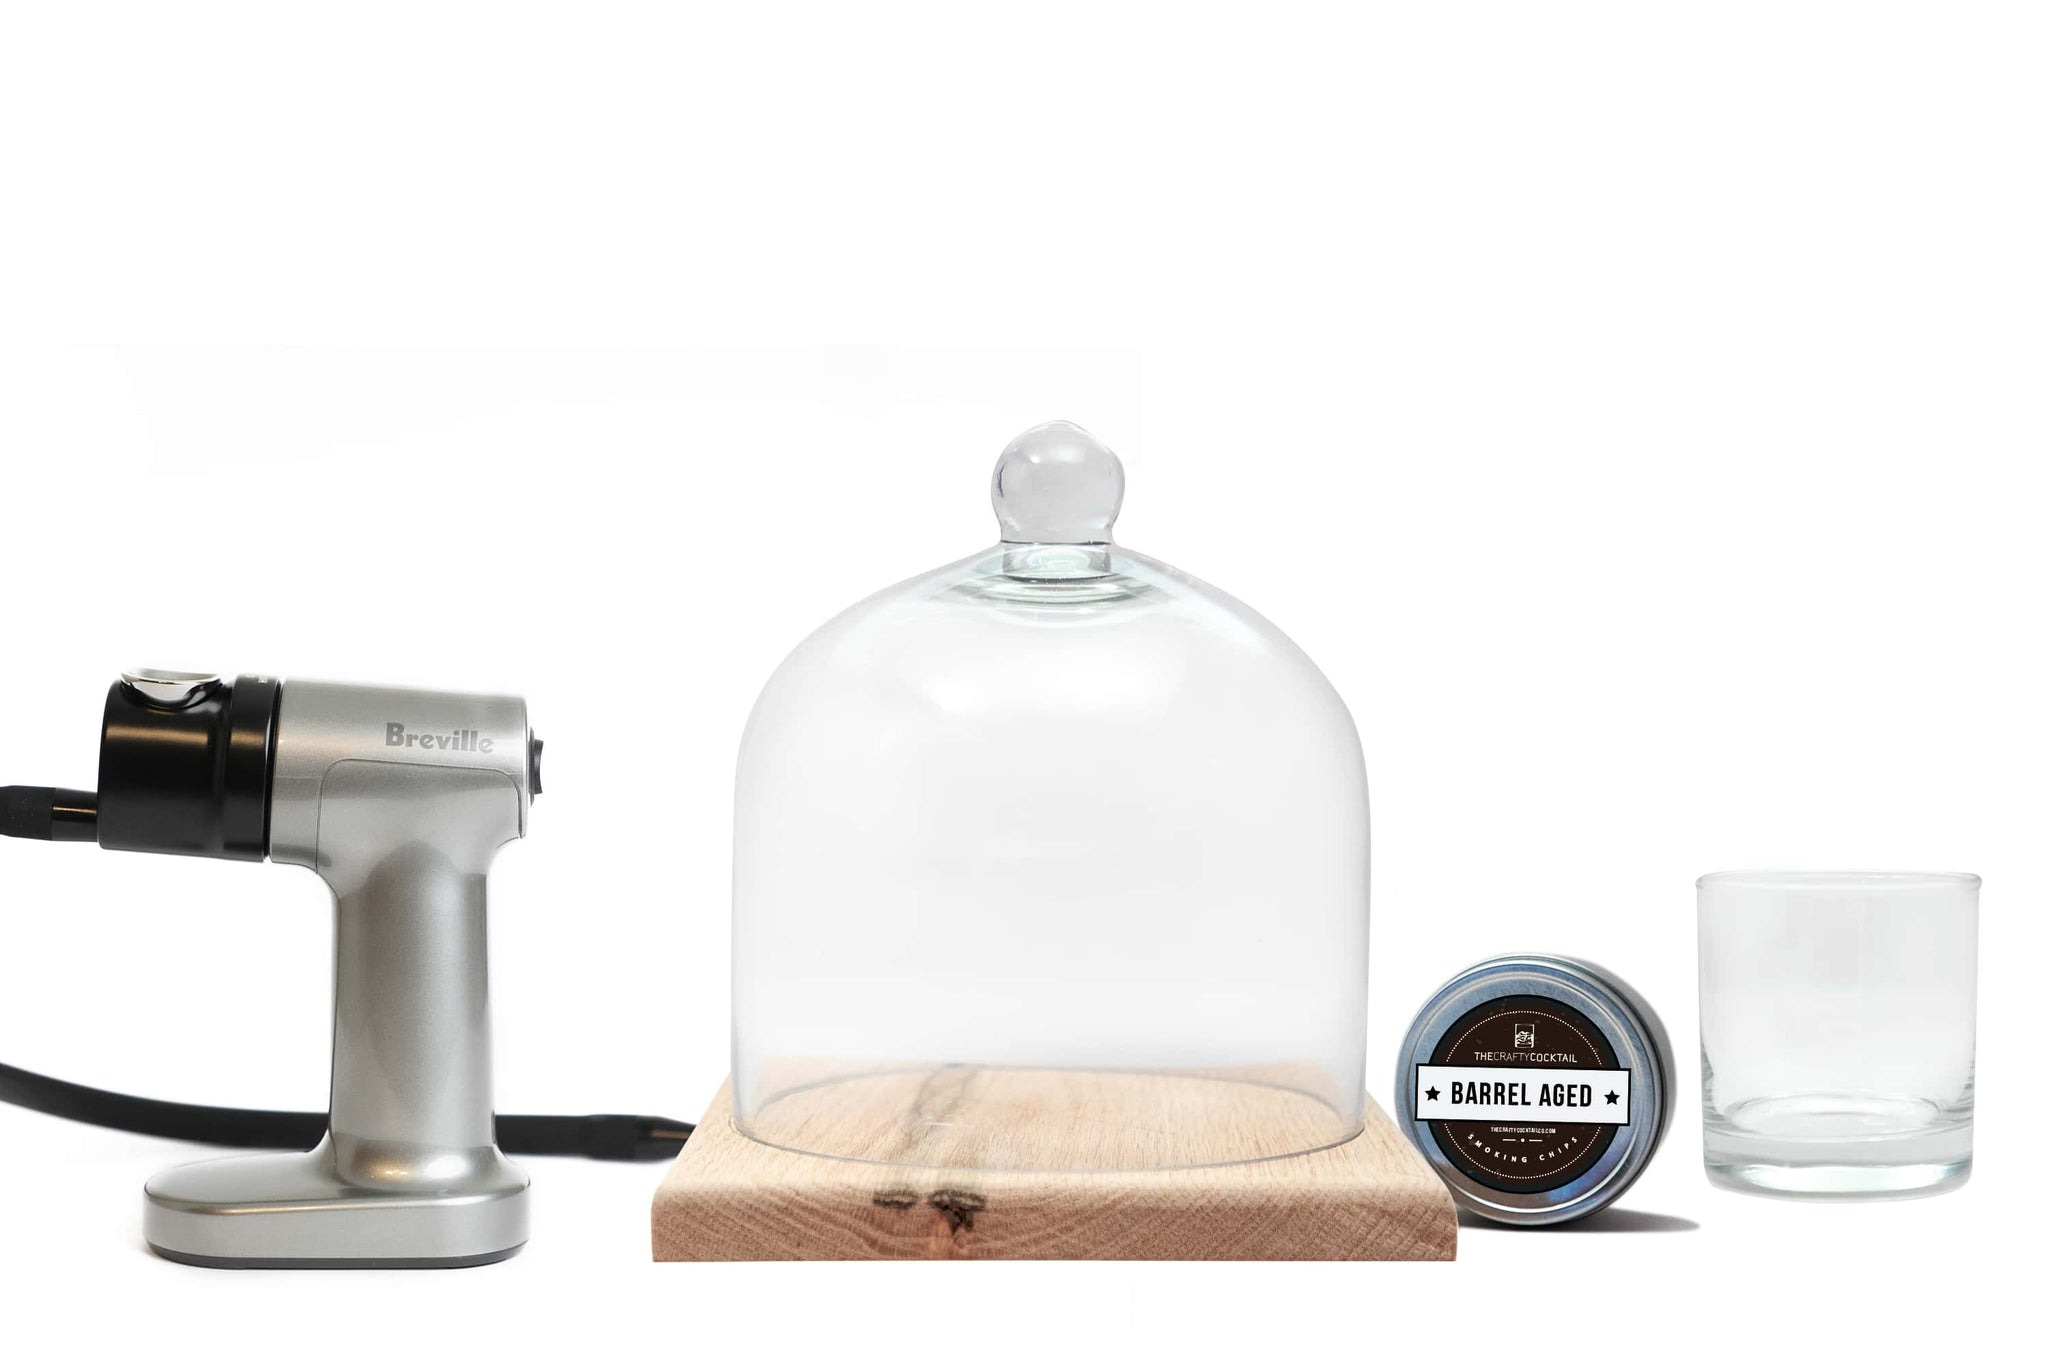 Professional Cocktail Smoking Infuser Kit - Medium Wooden Base